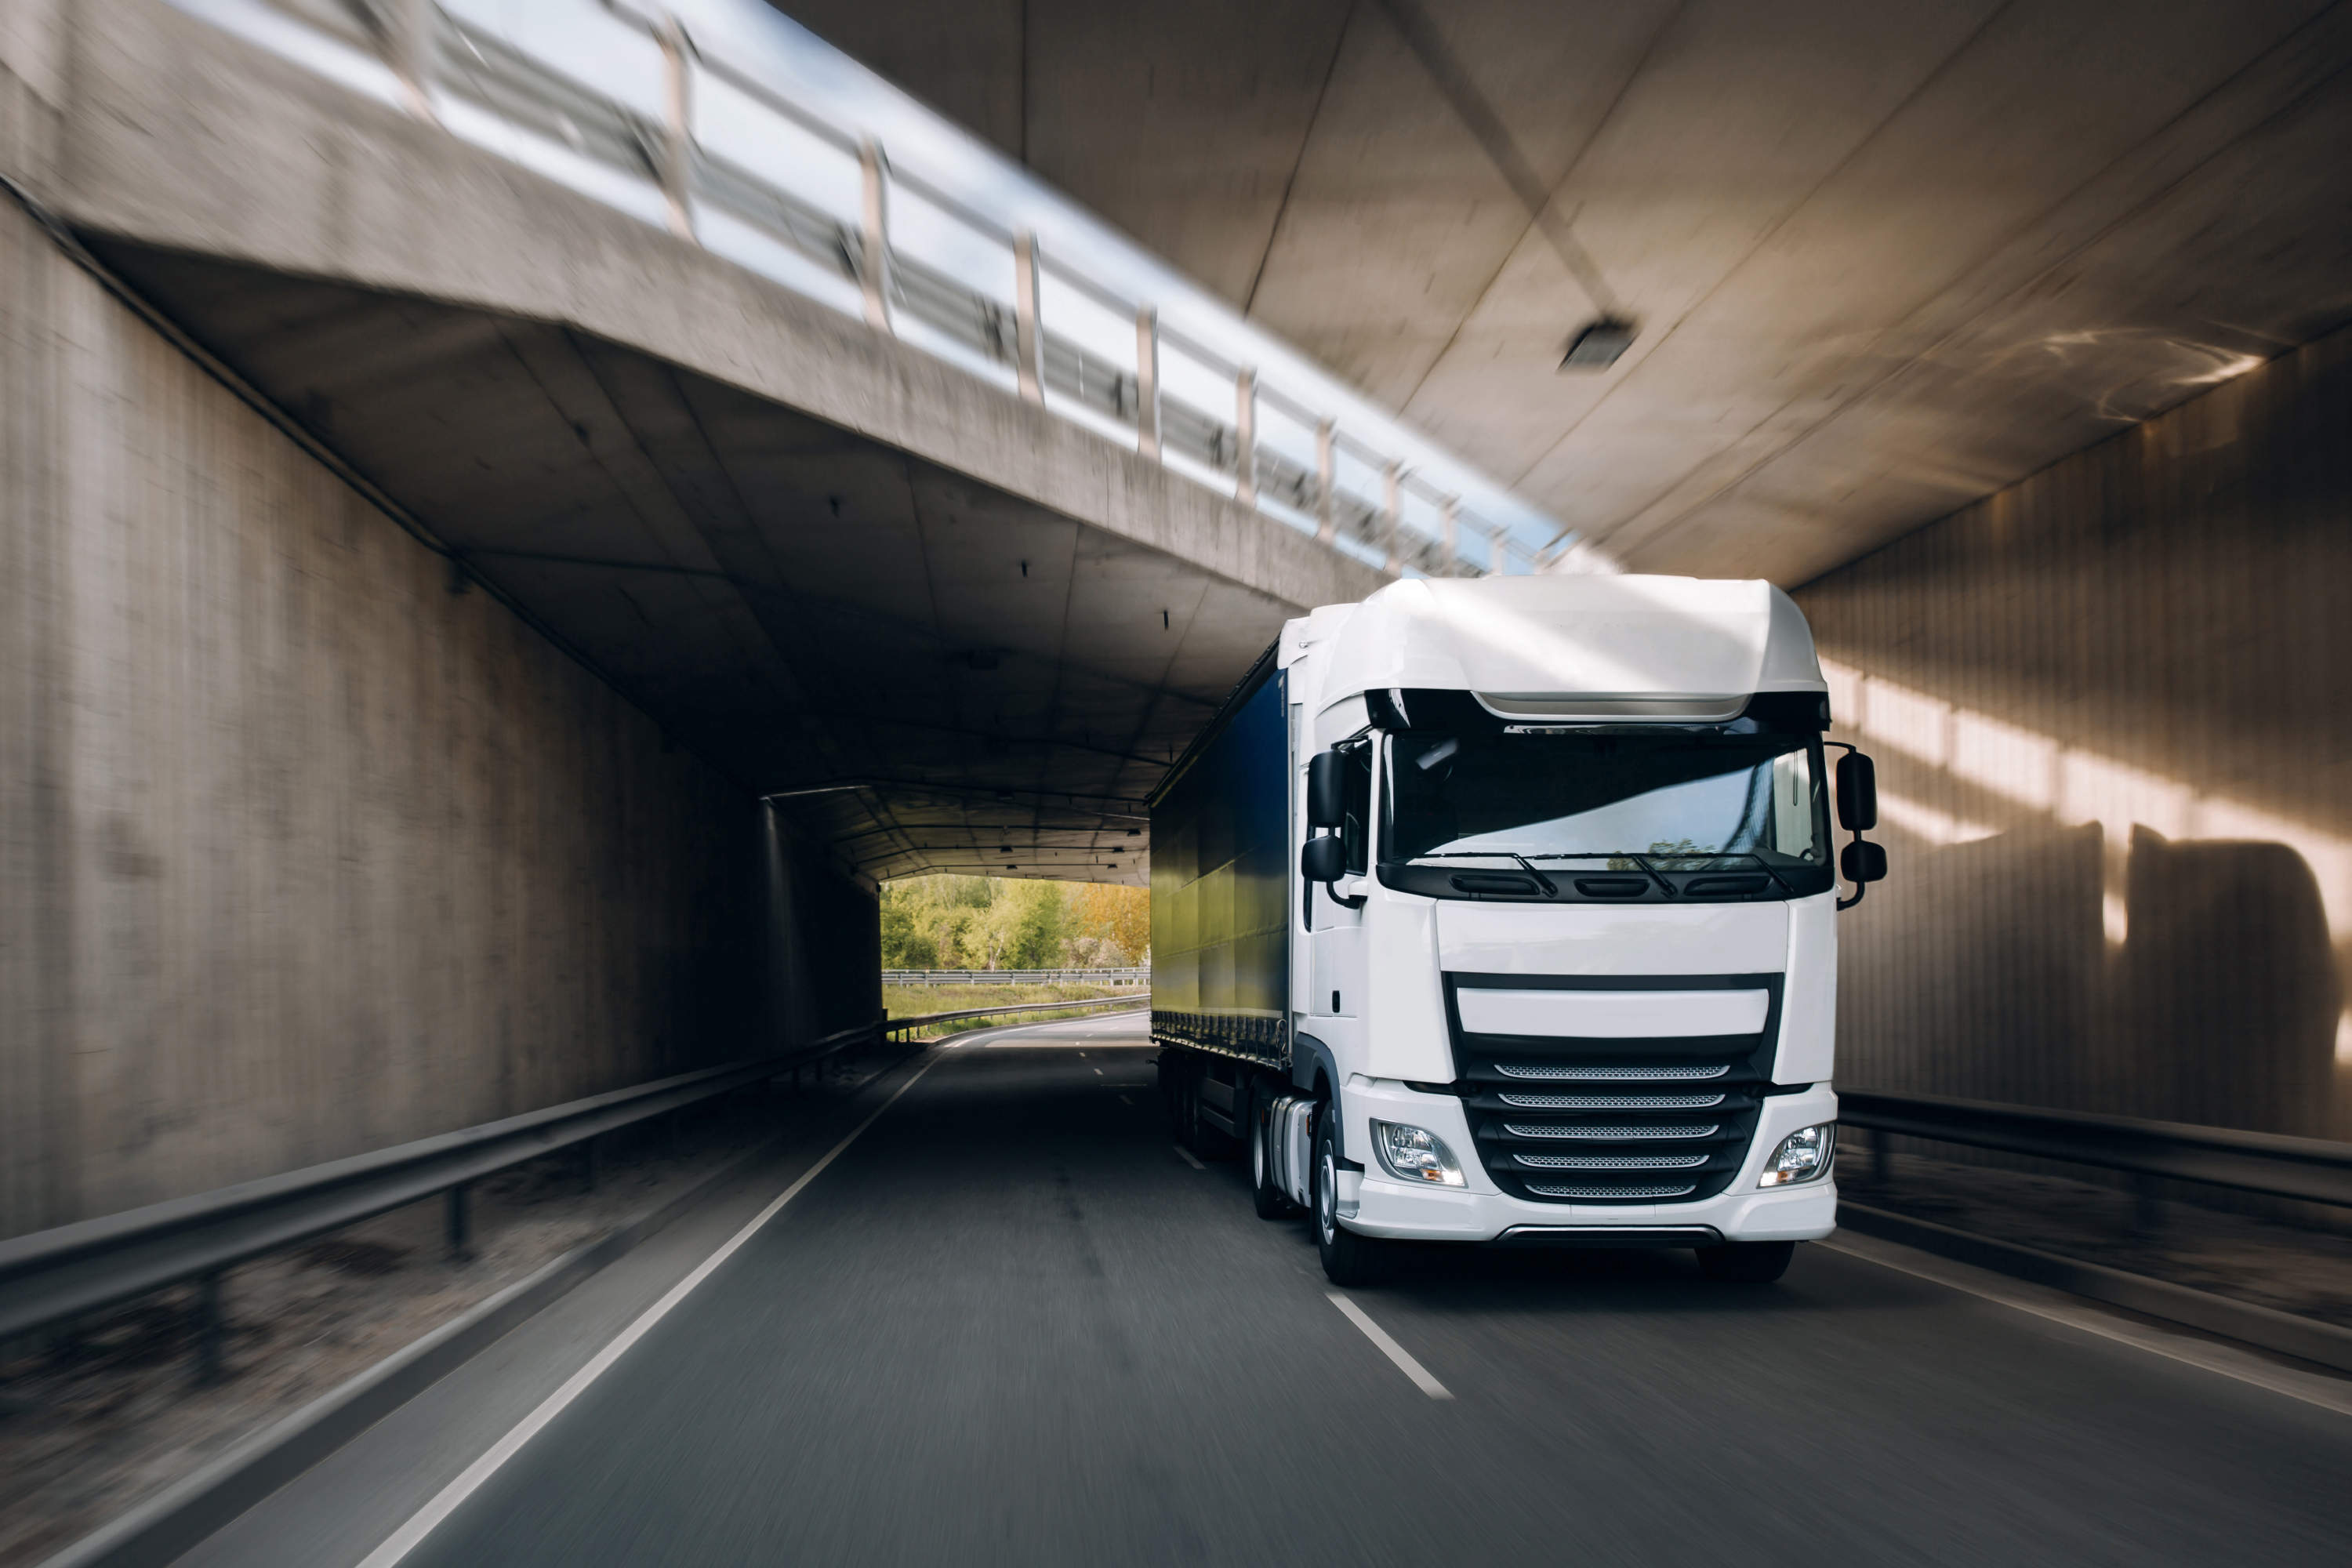 project44 lure talent from Girteka Logistics and Uber Freight as company expands in Europe